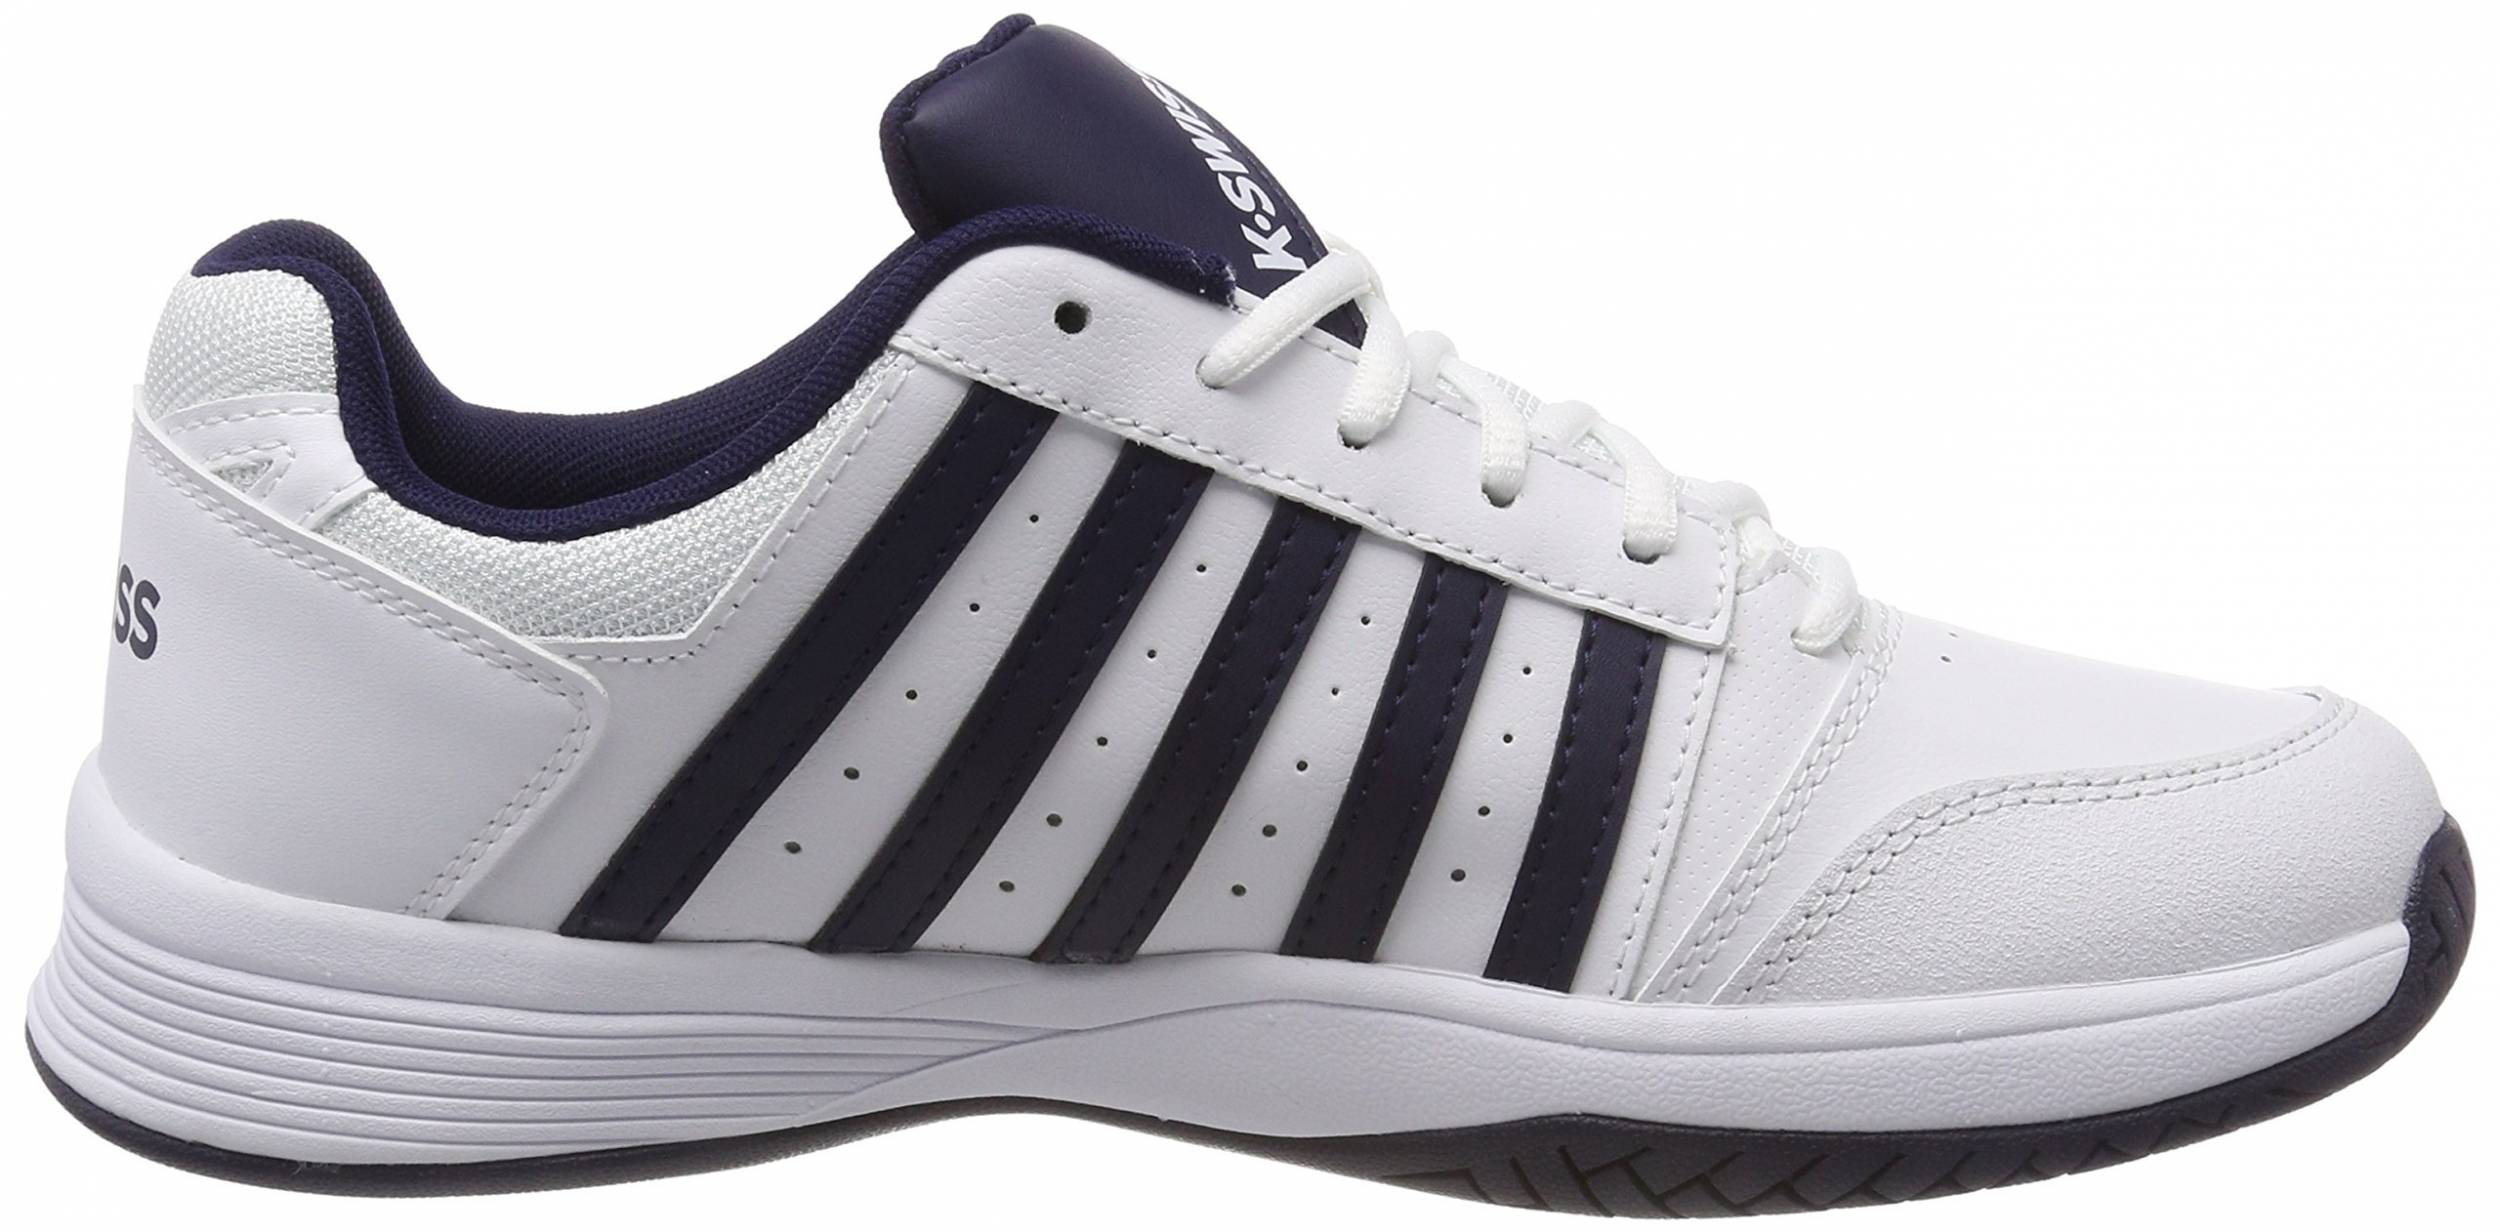 Review of K-Swiss Court Smash